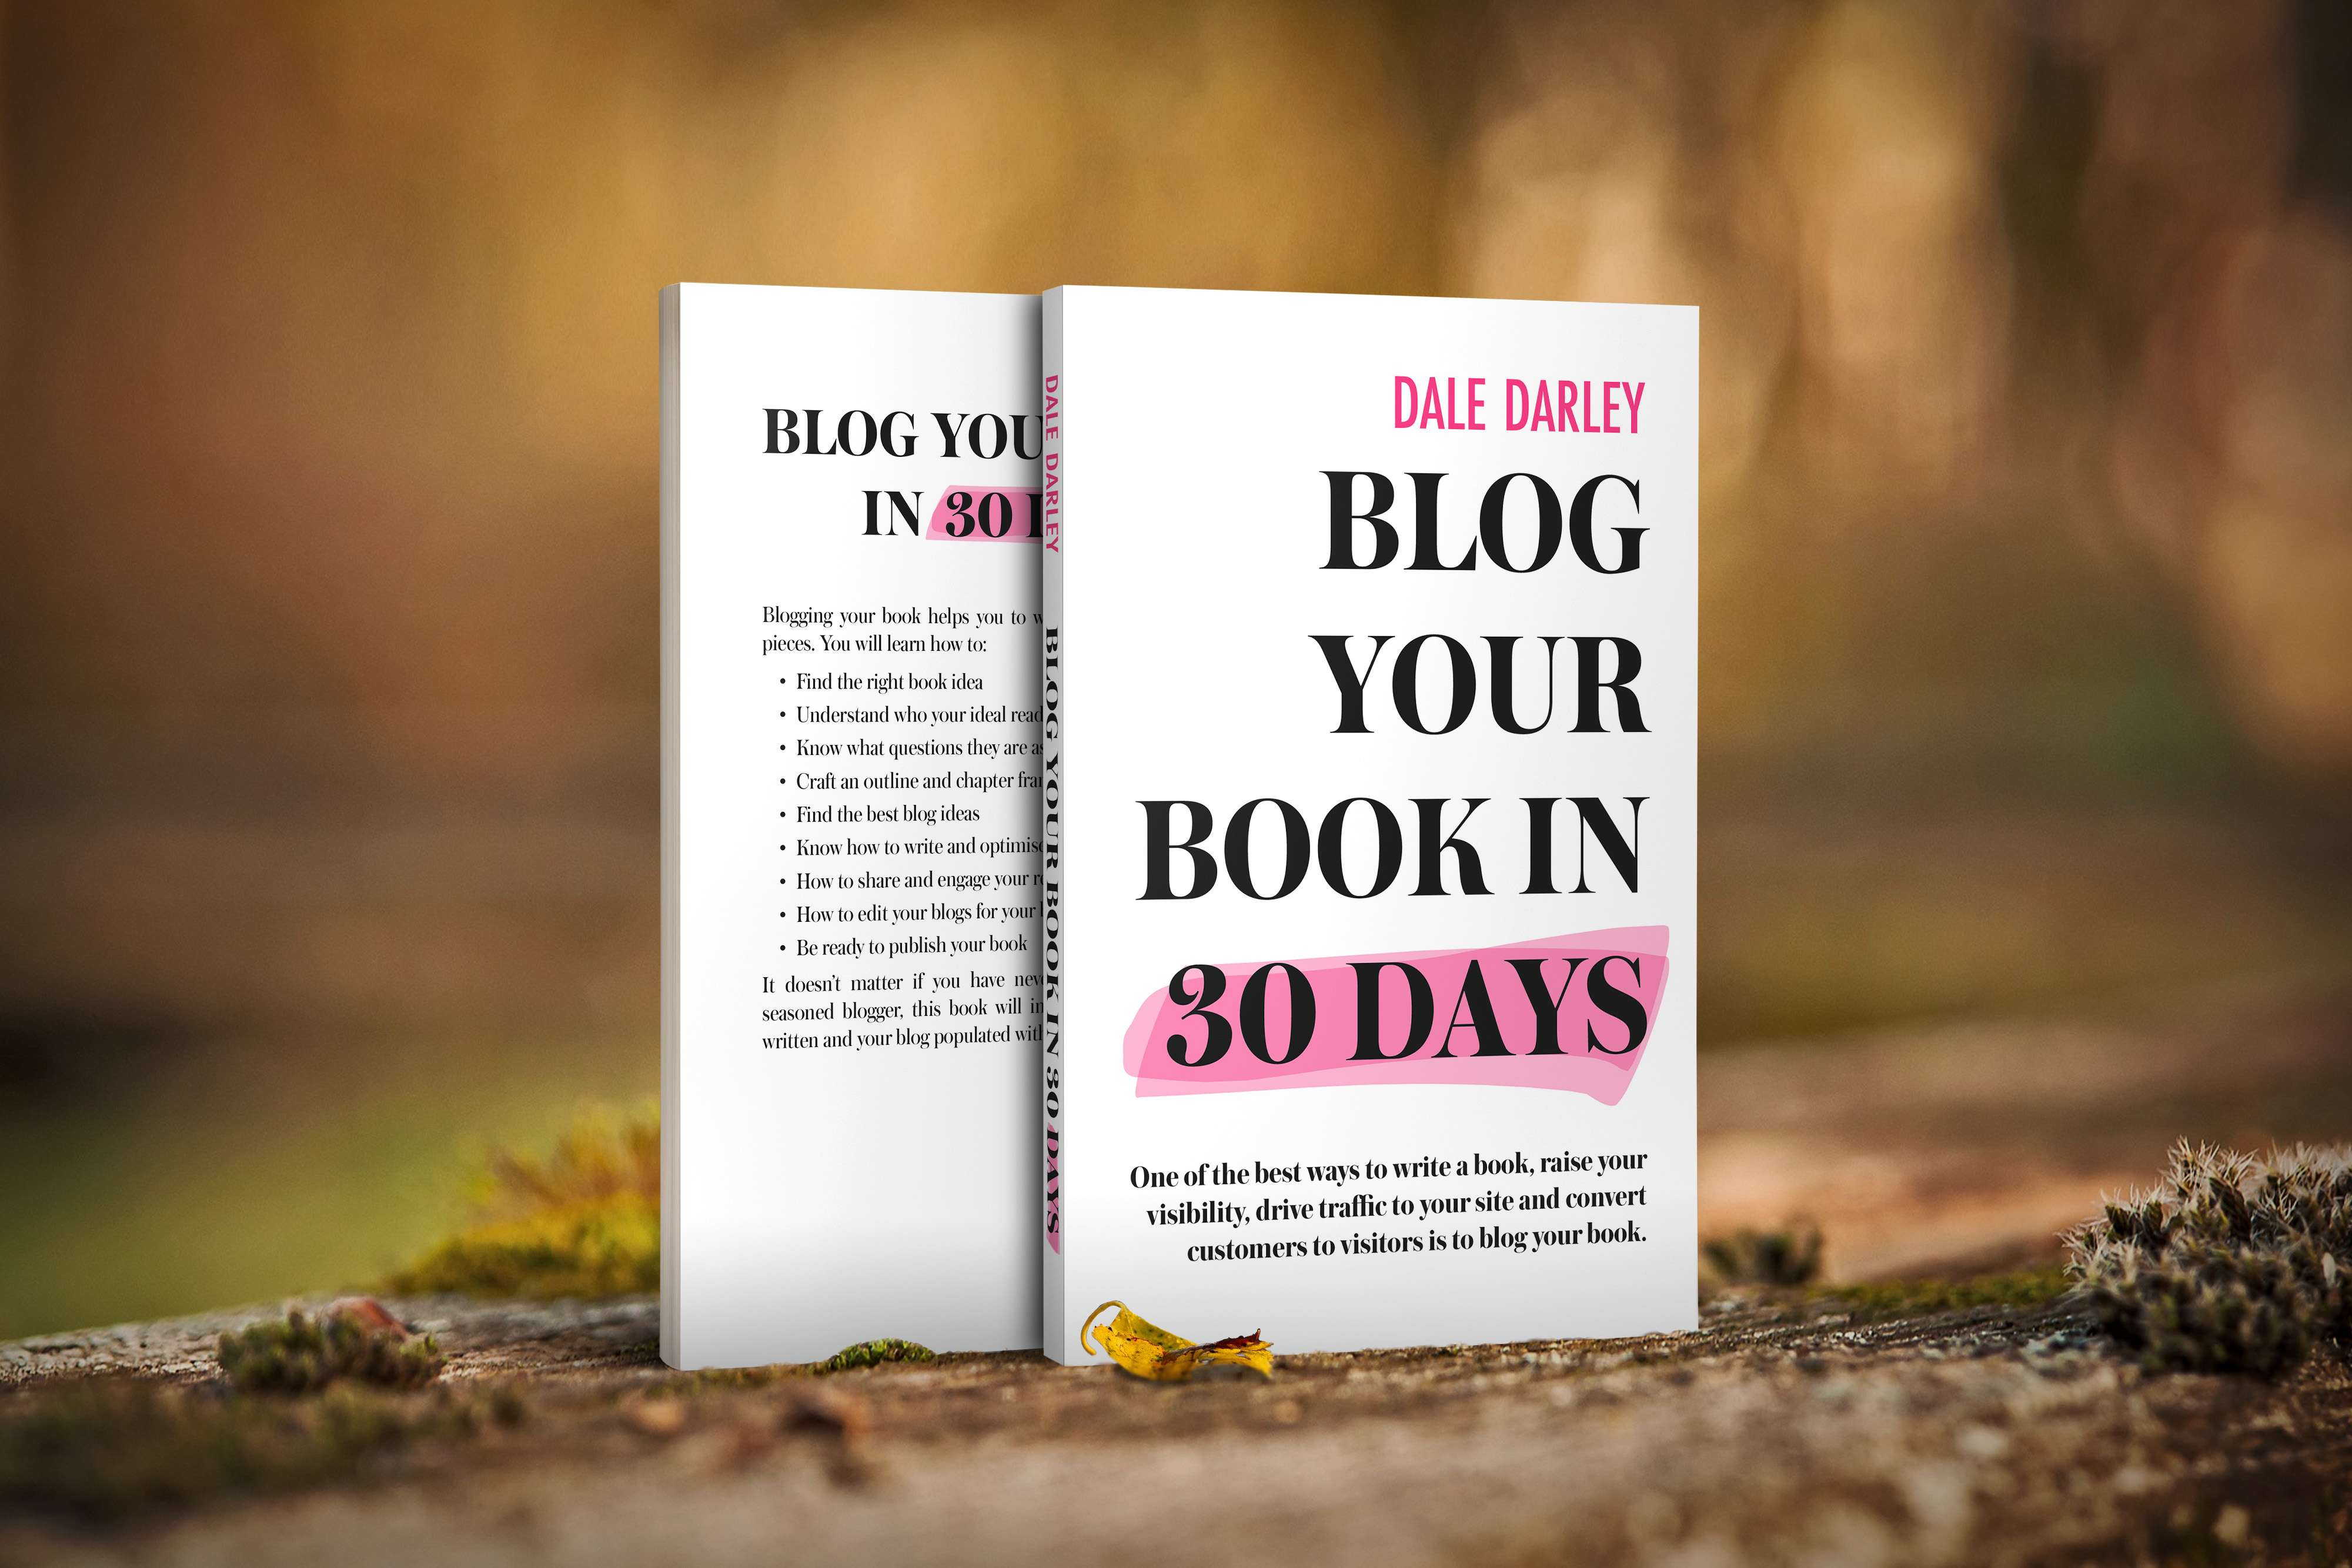 Blog your book in 30 days